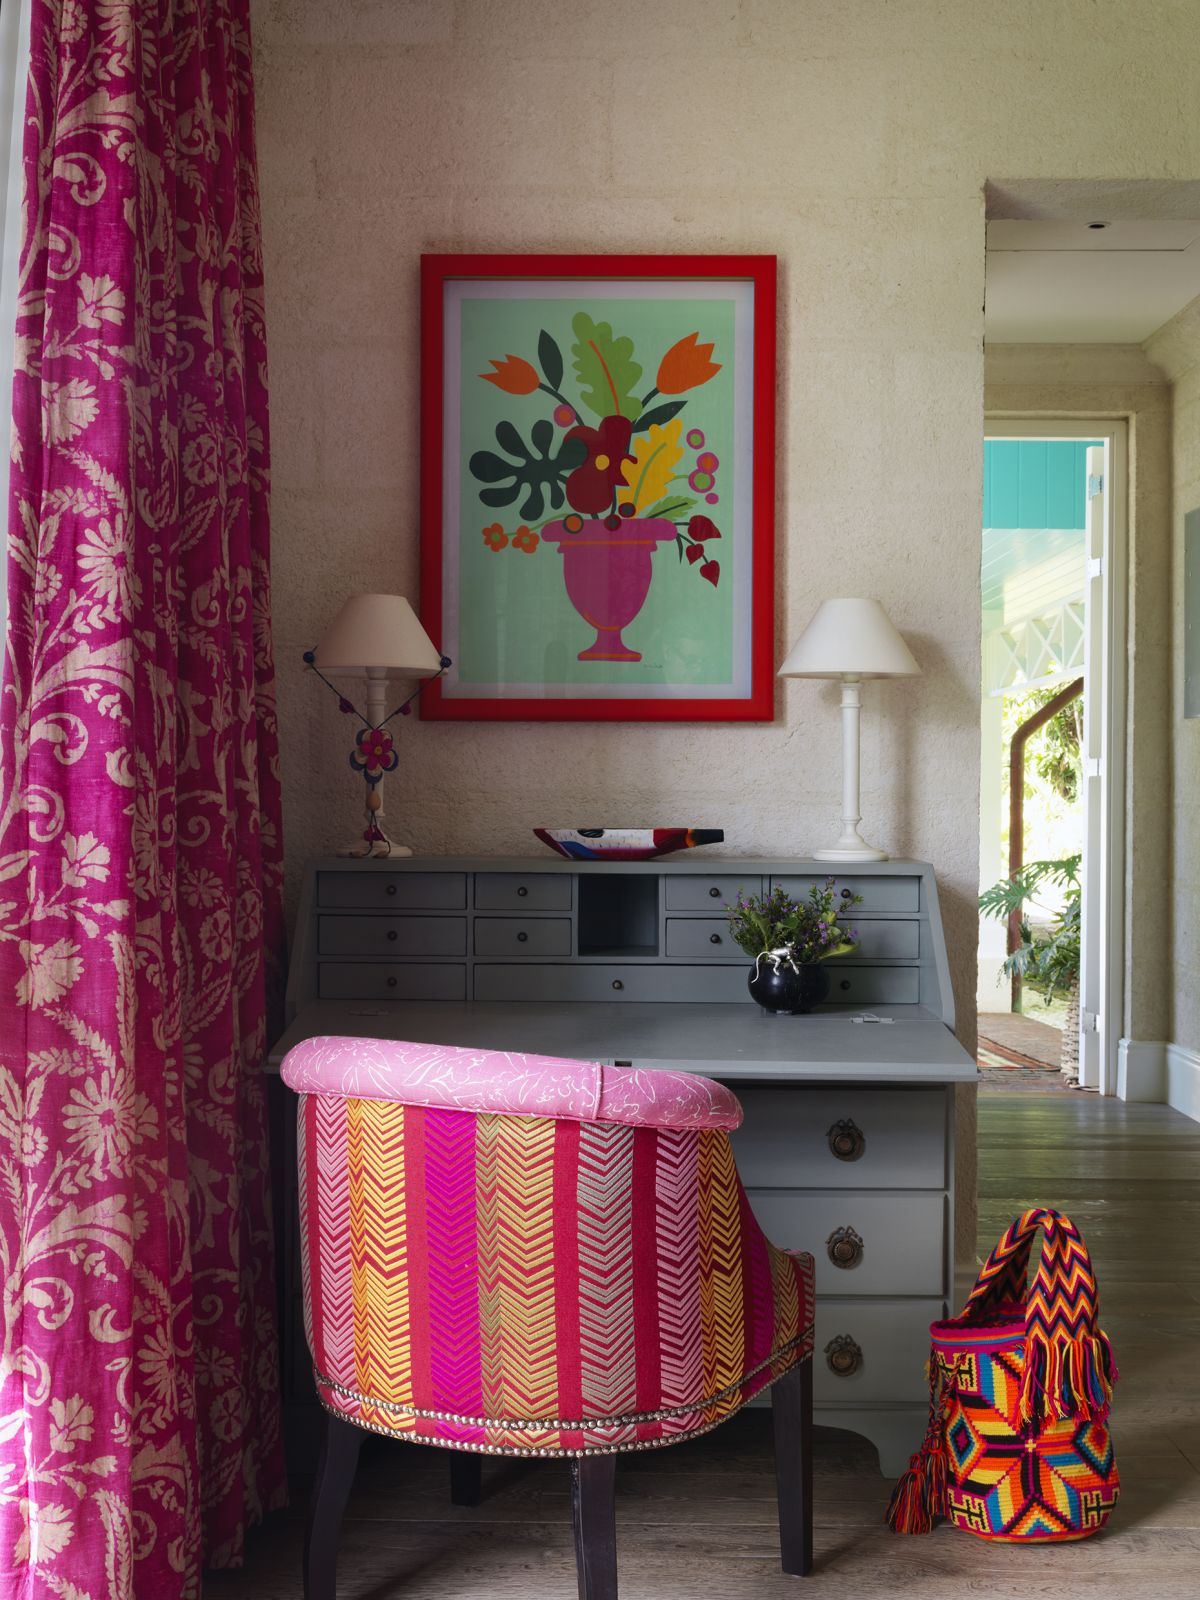 5 tips for improving home office productivity – from top interior designers